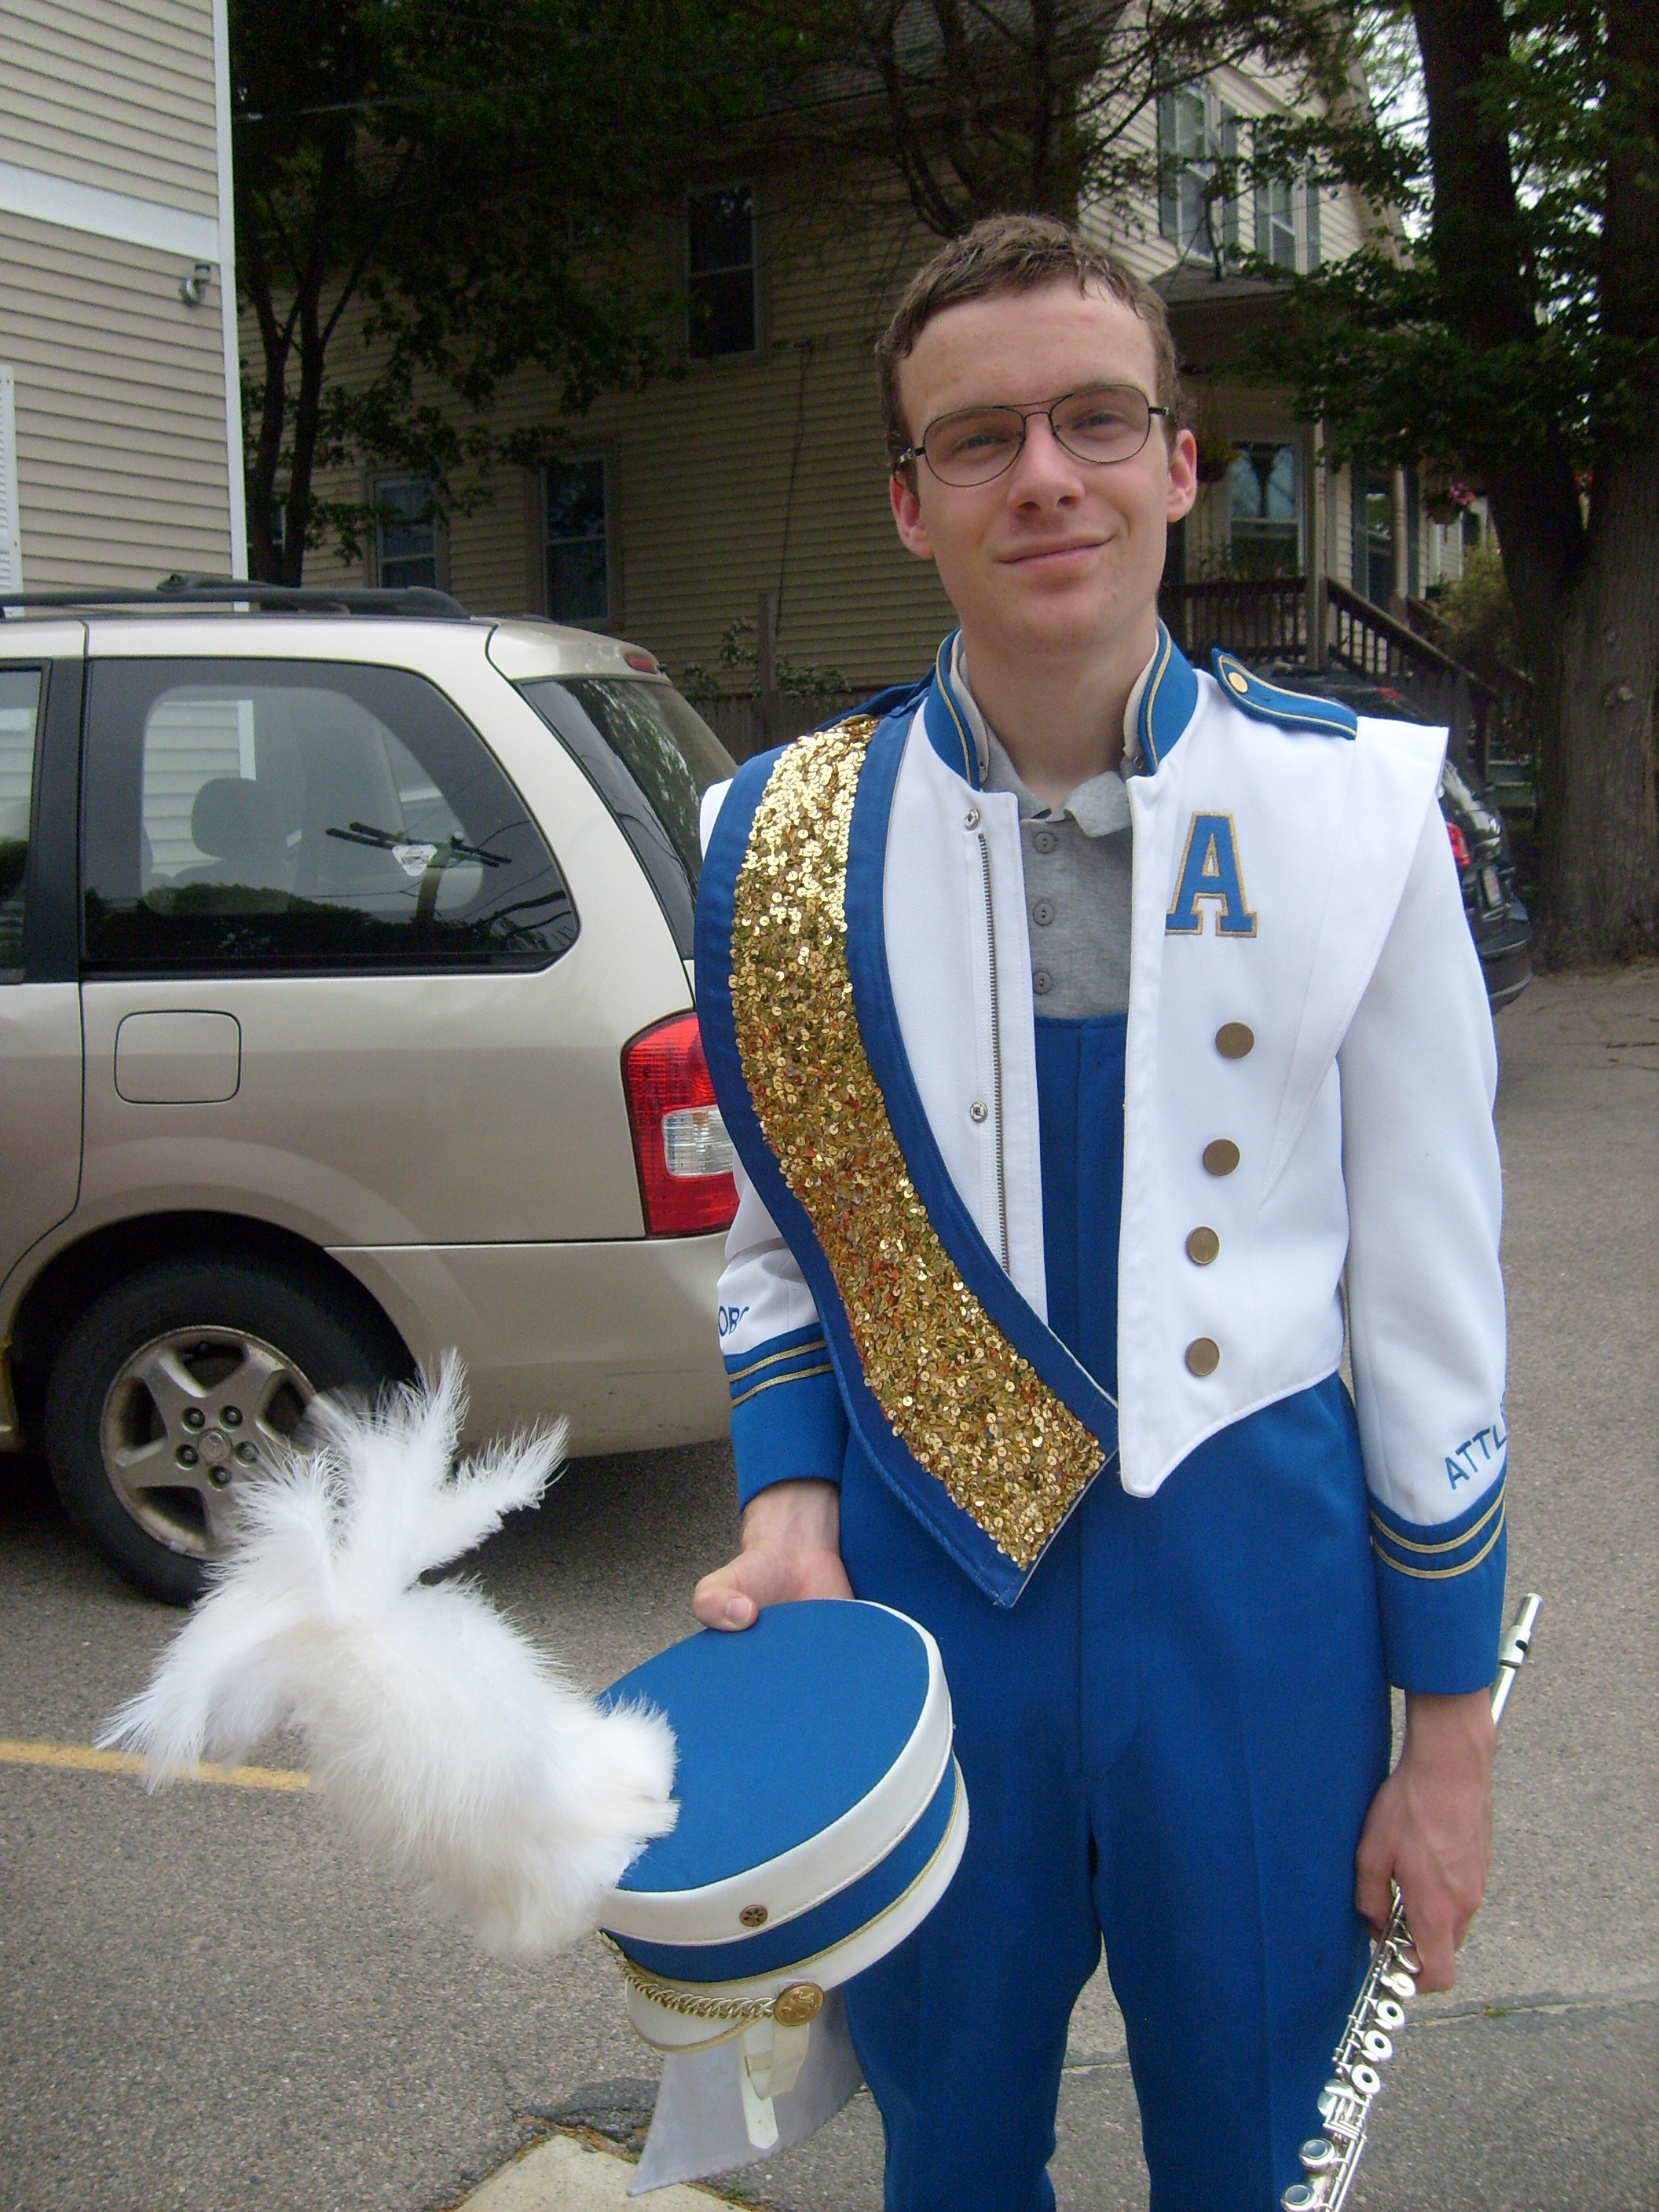 M in his band uniform after the Memorial Day Parade